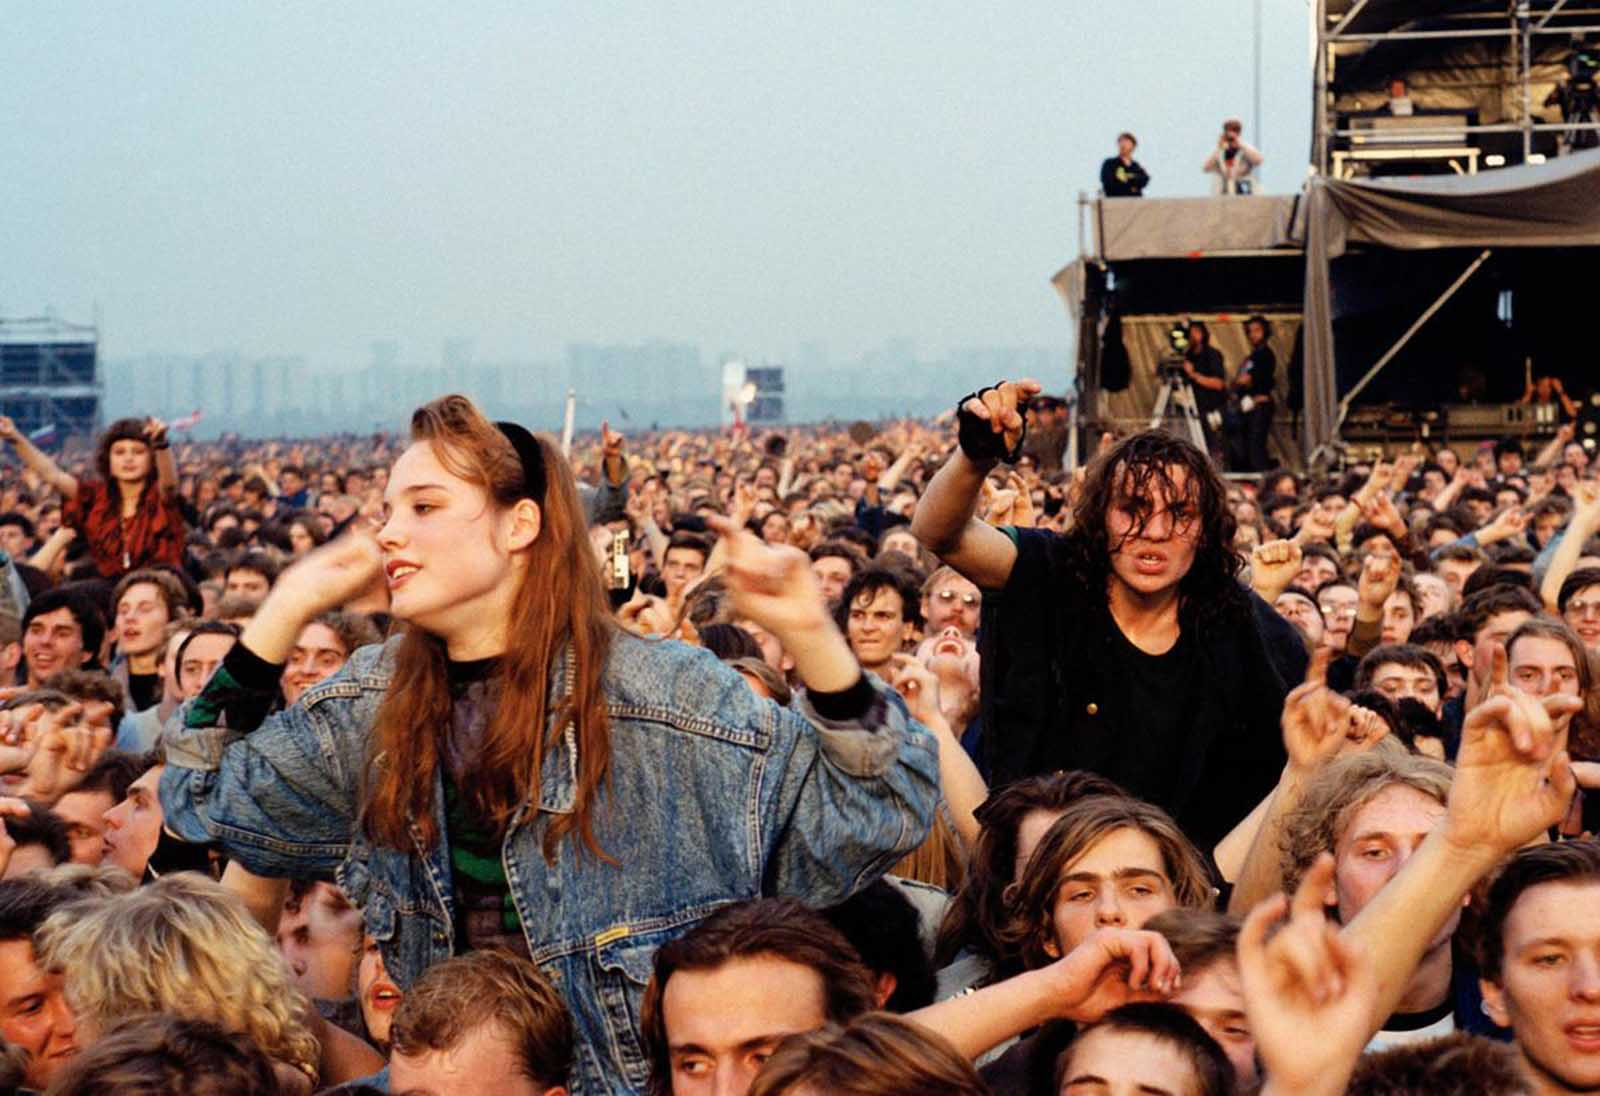 Soviet rock fans attend a concert in Moscow on September 28, 1991. Half a million people jammed an airfield to see the Monsters of Rock concert featuring AC/DC, Pantera and Metallica at the Soviet Union's biggest Western rock concert, touted as a gift to Russian youth for their resistance to last month's coup.